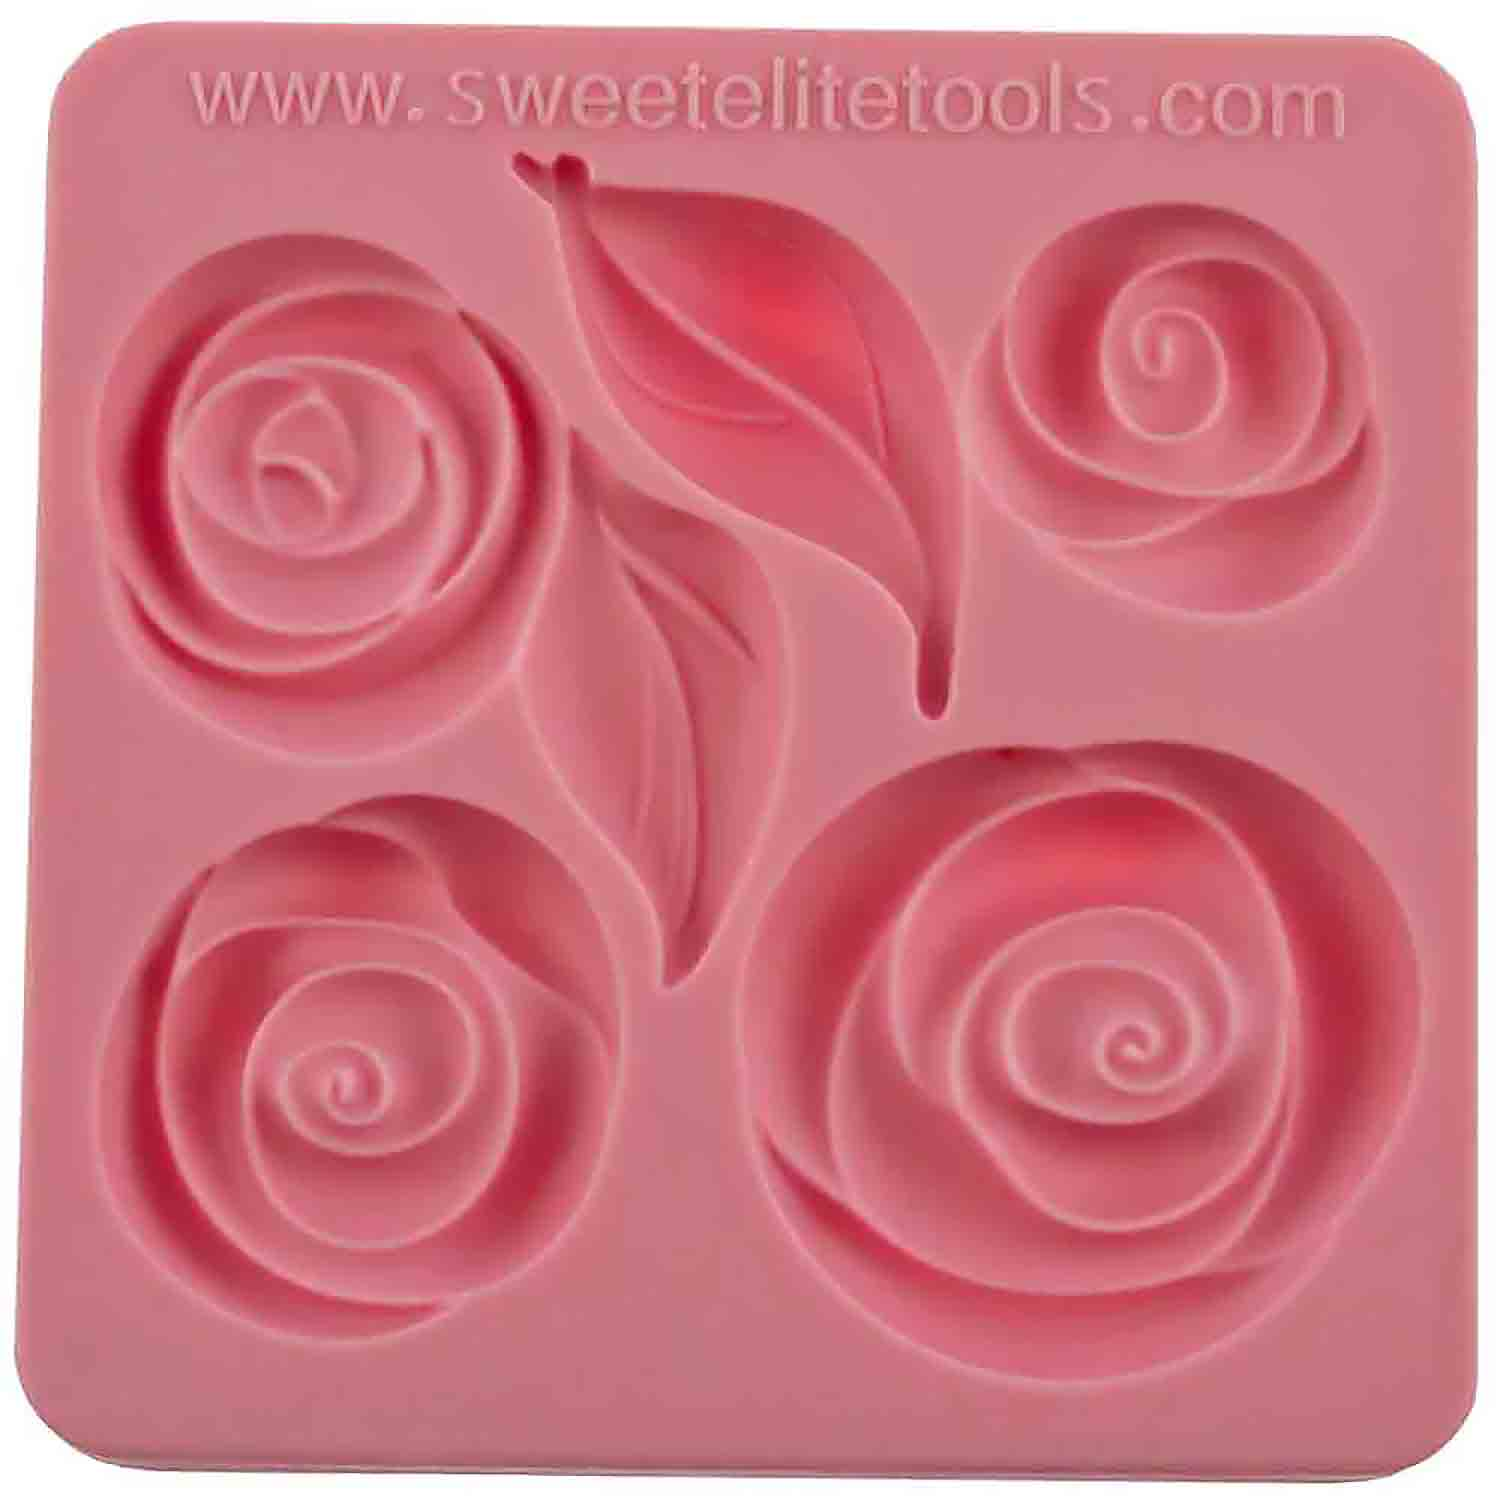 pouf roses and leaves silicone mold by colette peters sbs 6300cp country kitchen sweetart. Black Bedroom Furniture Sets. Home Design Ideas